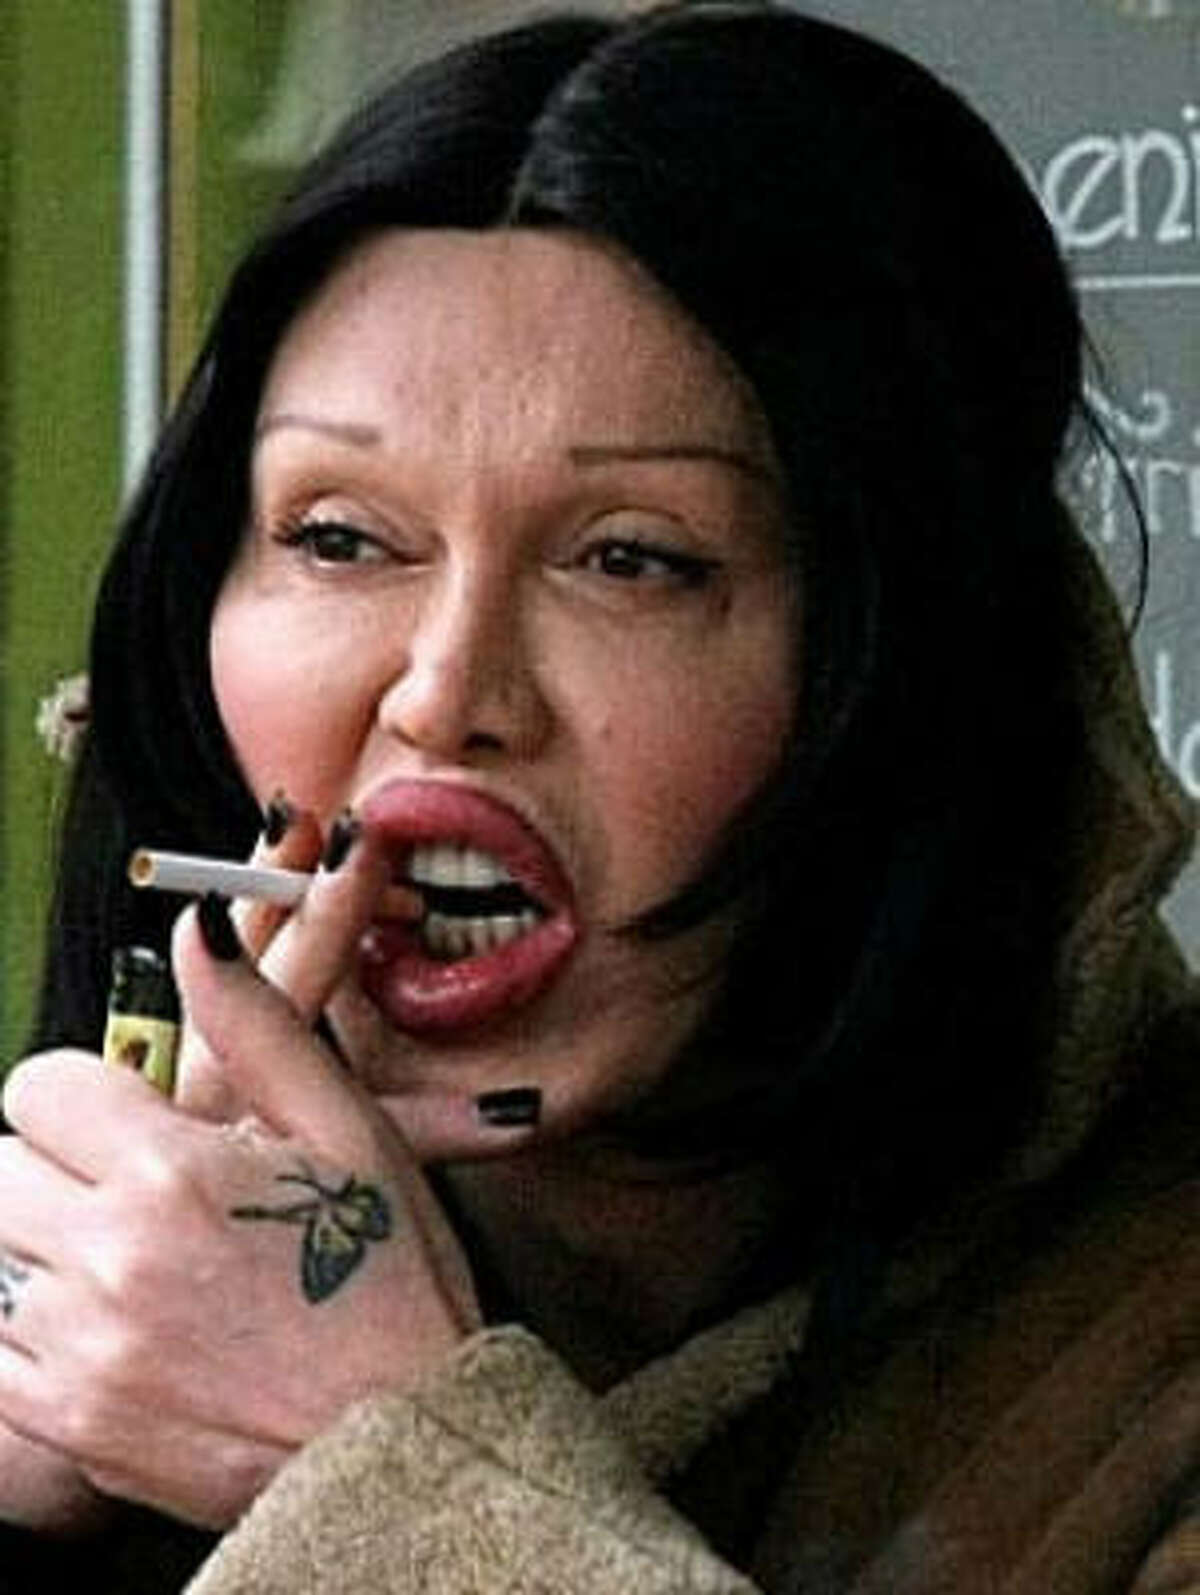 '80s singer Pete Burns won his medical malpractice lawsuit against the doctor who injected his lips with collagen. But he seems to have done a lot more since.